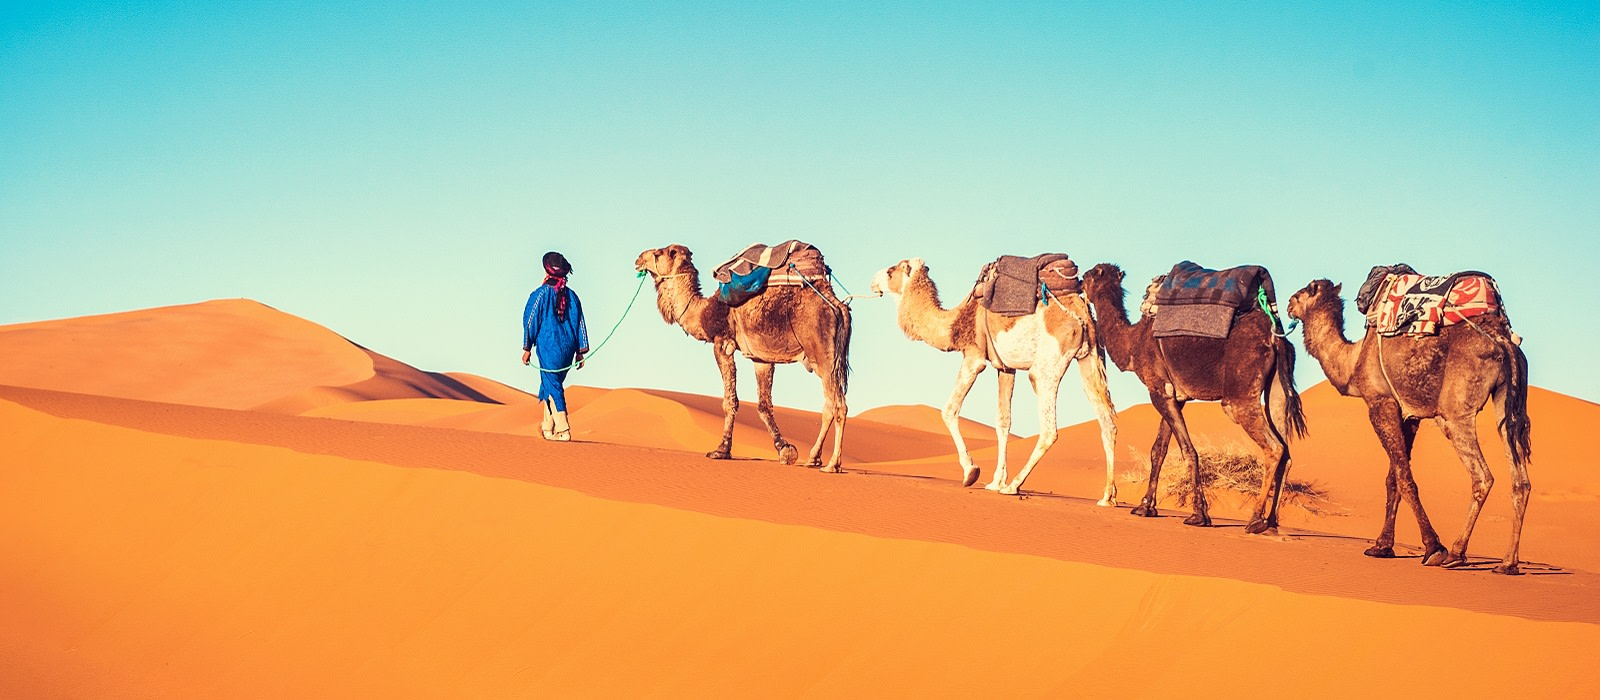 Morocco : Souks, Spices and the Sahara Tour Trip 1